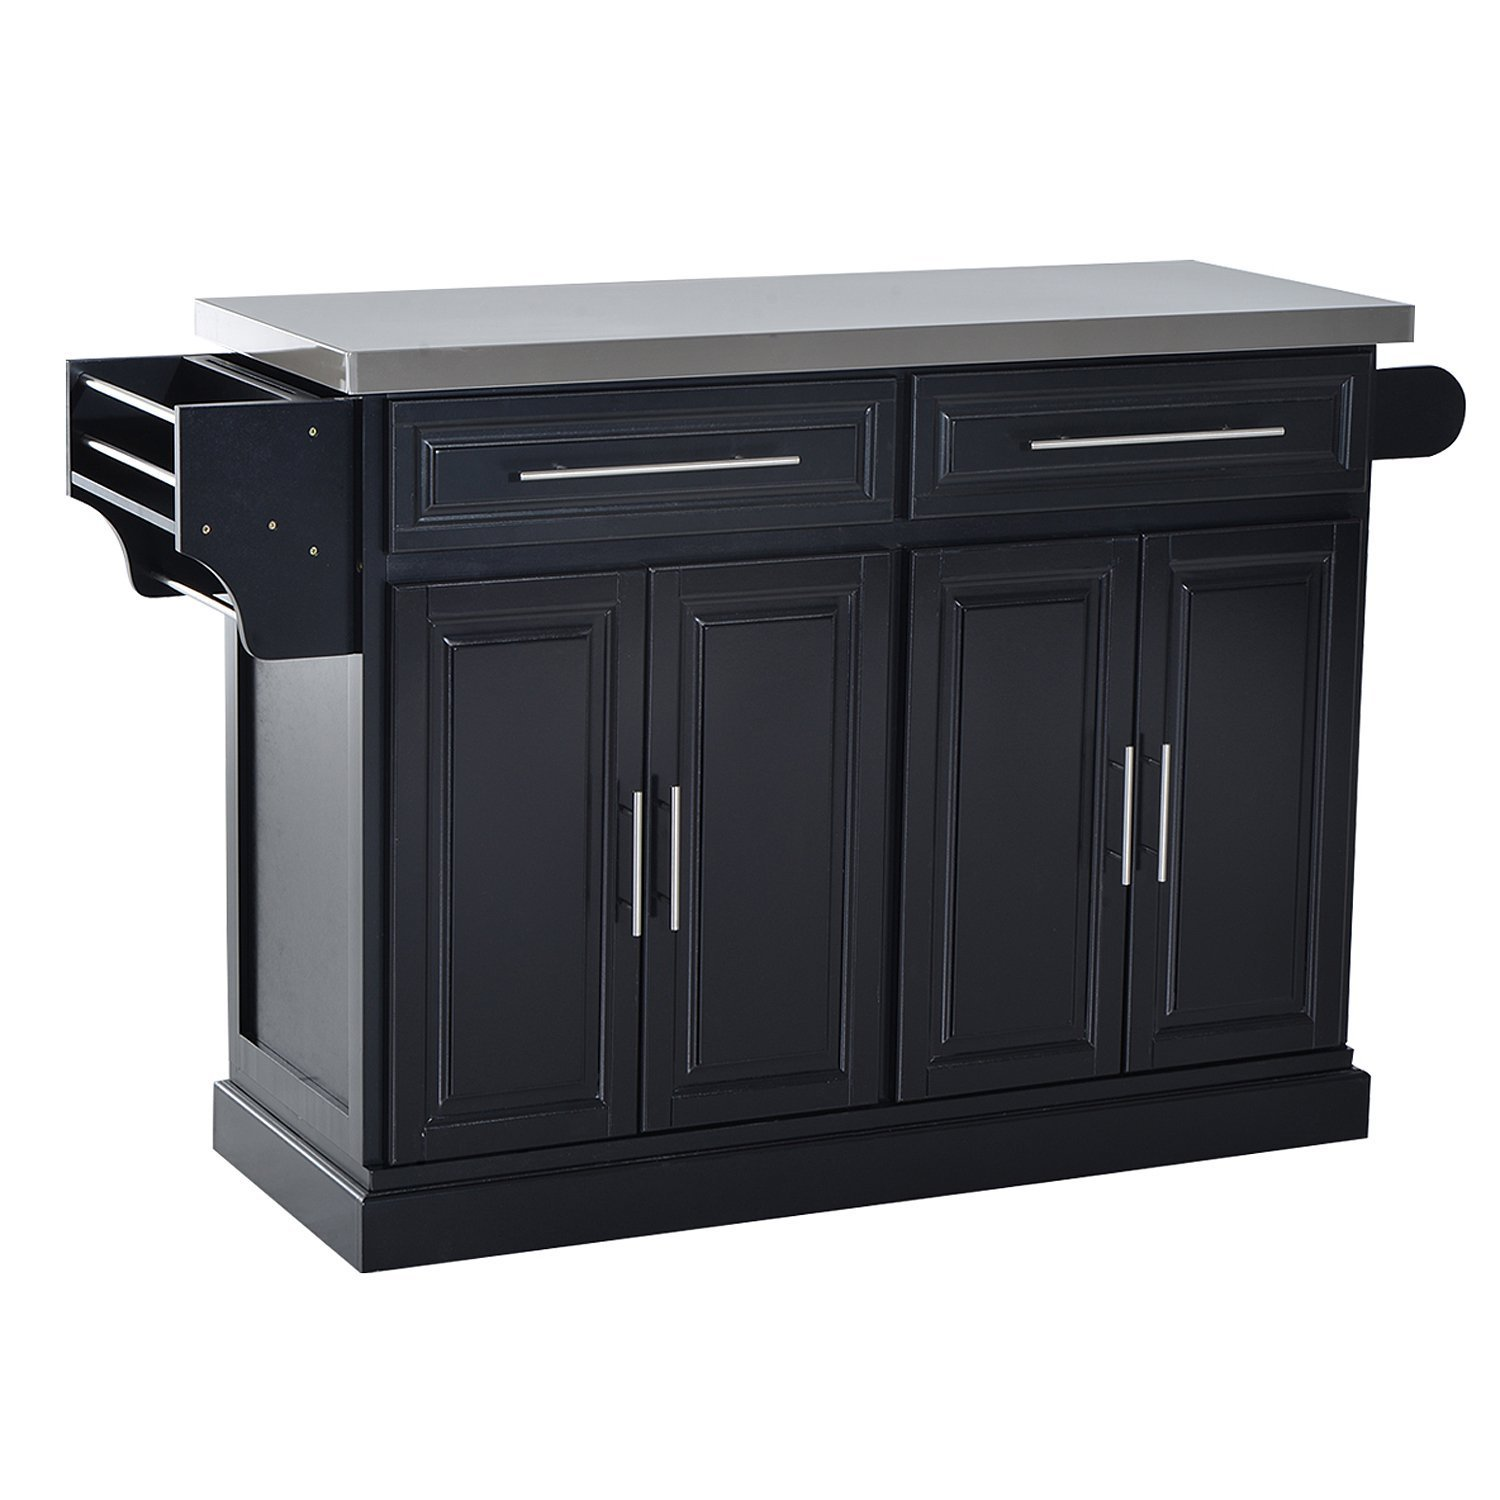 HomCom Modern Rolling Kitchen Island Storage Cart w/Stainless Steel Top - Black 801-032BK